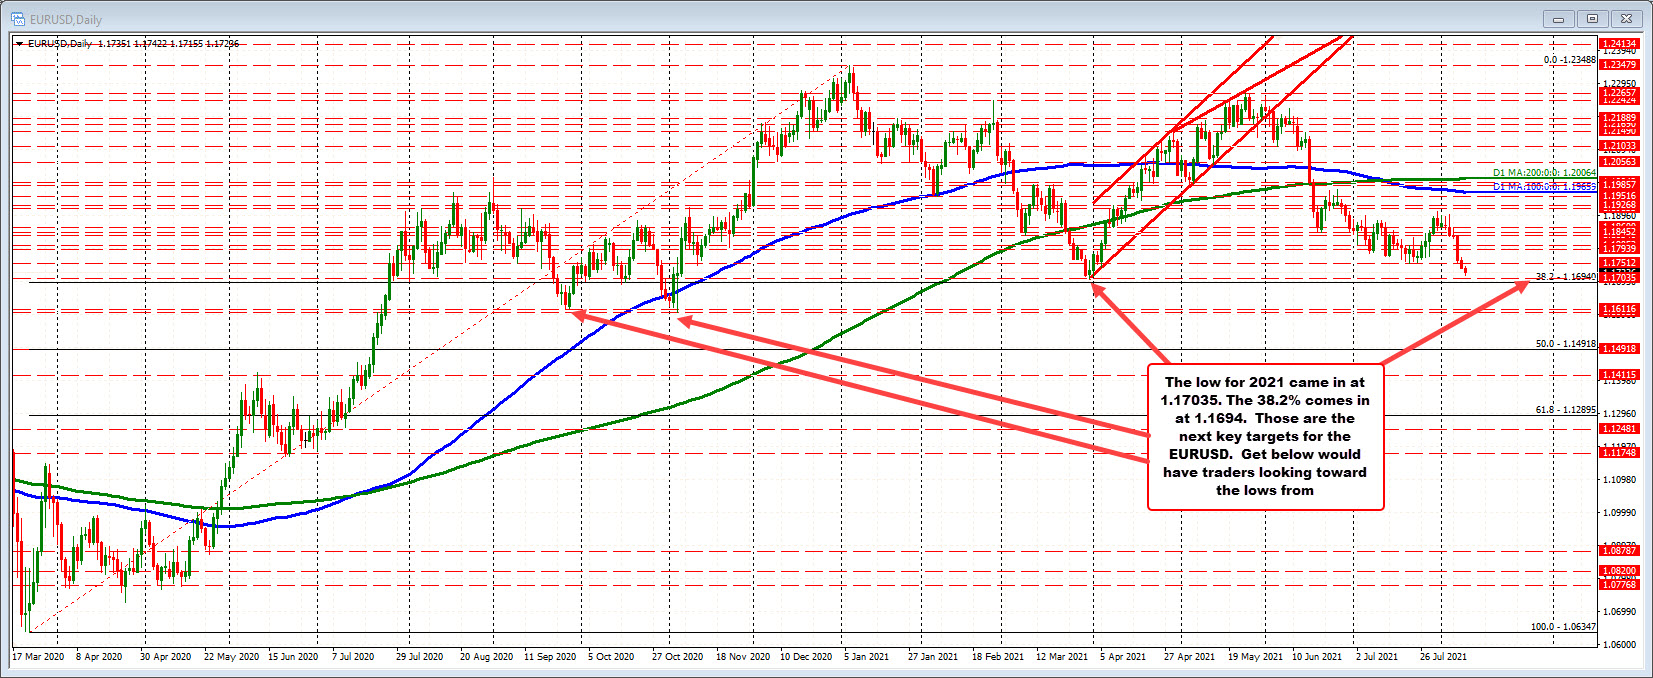 The low for 2021 is at 1.17035